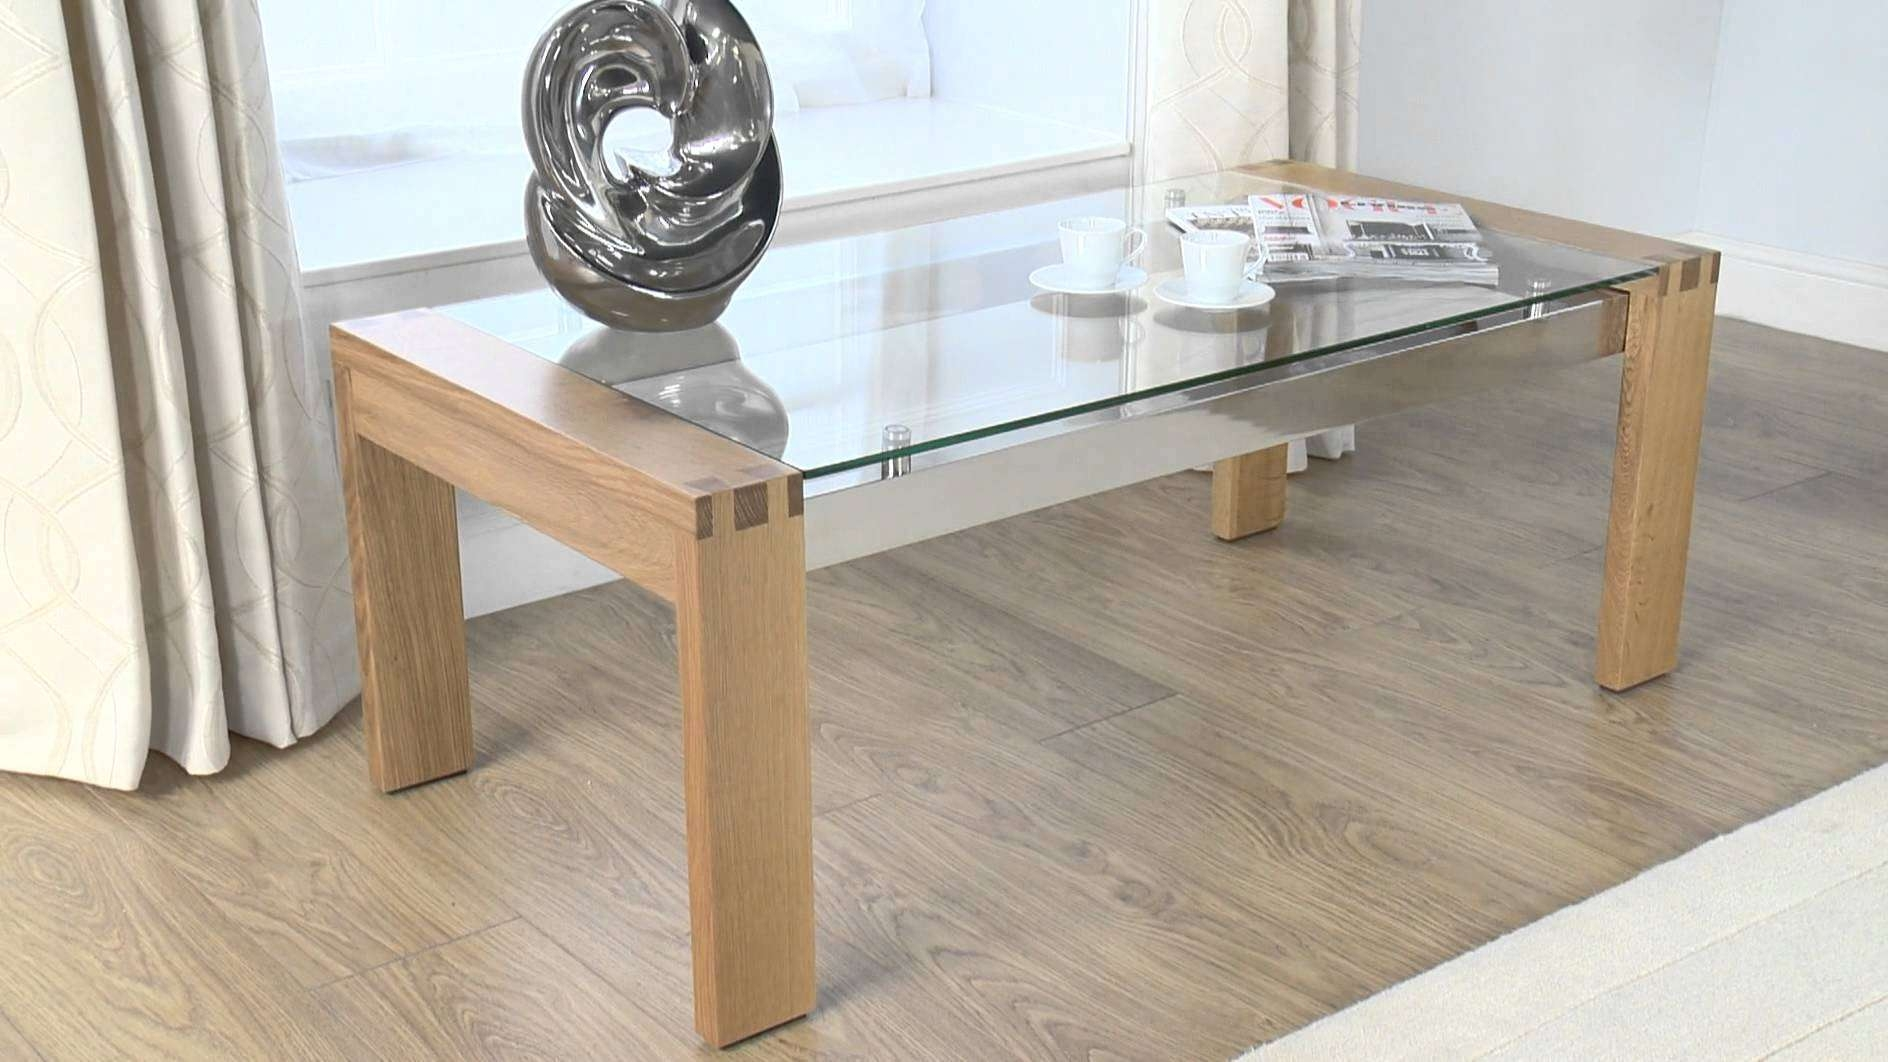 Most Current Oak Coffee Table With Glass Top In Coffee Table : Marvelous Small Glass Coffee Table Living Room (View 20 of 20)